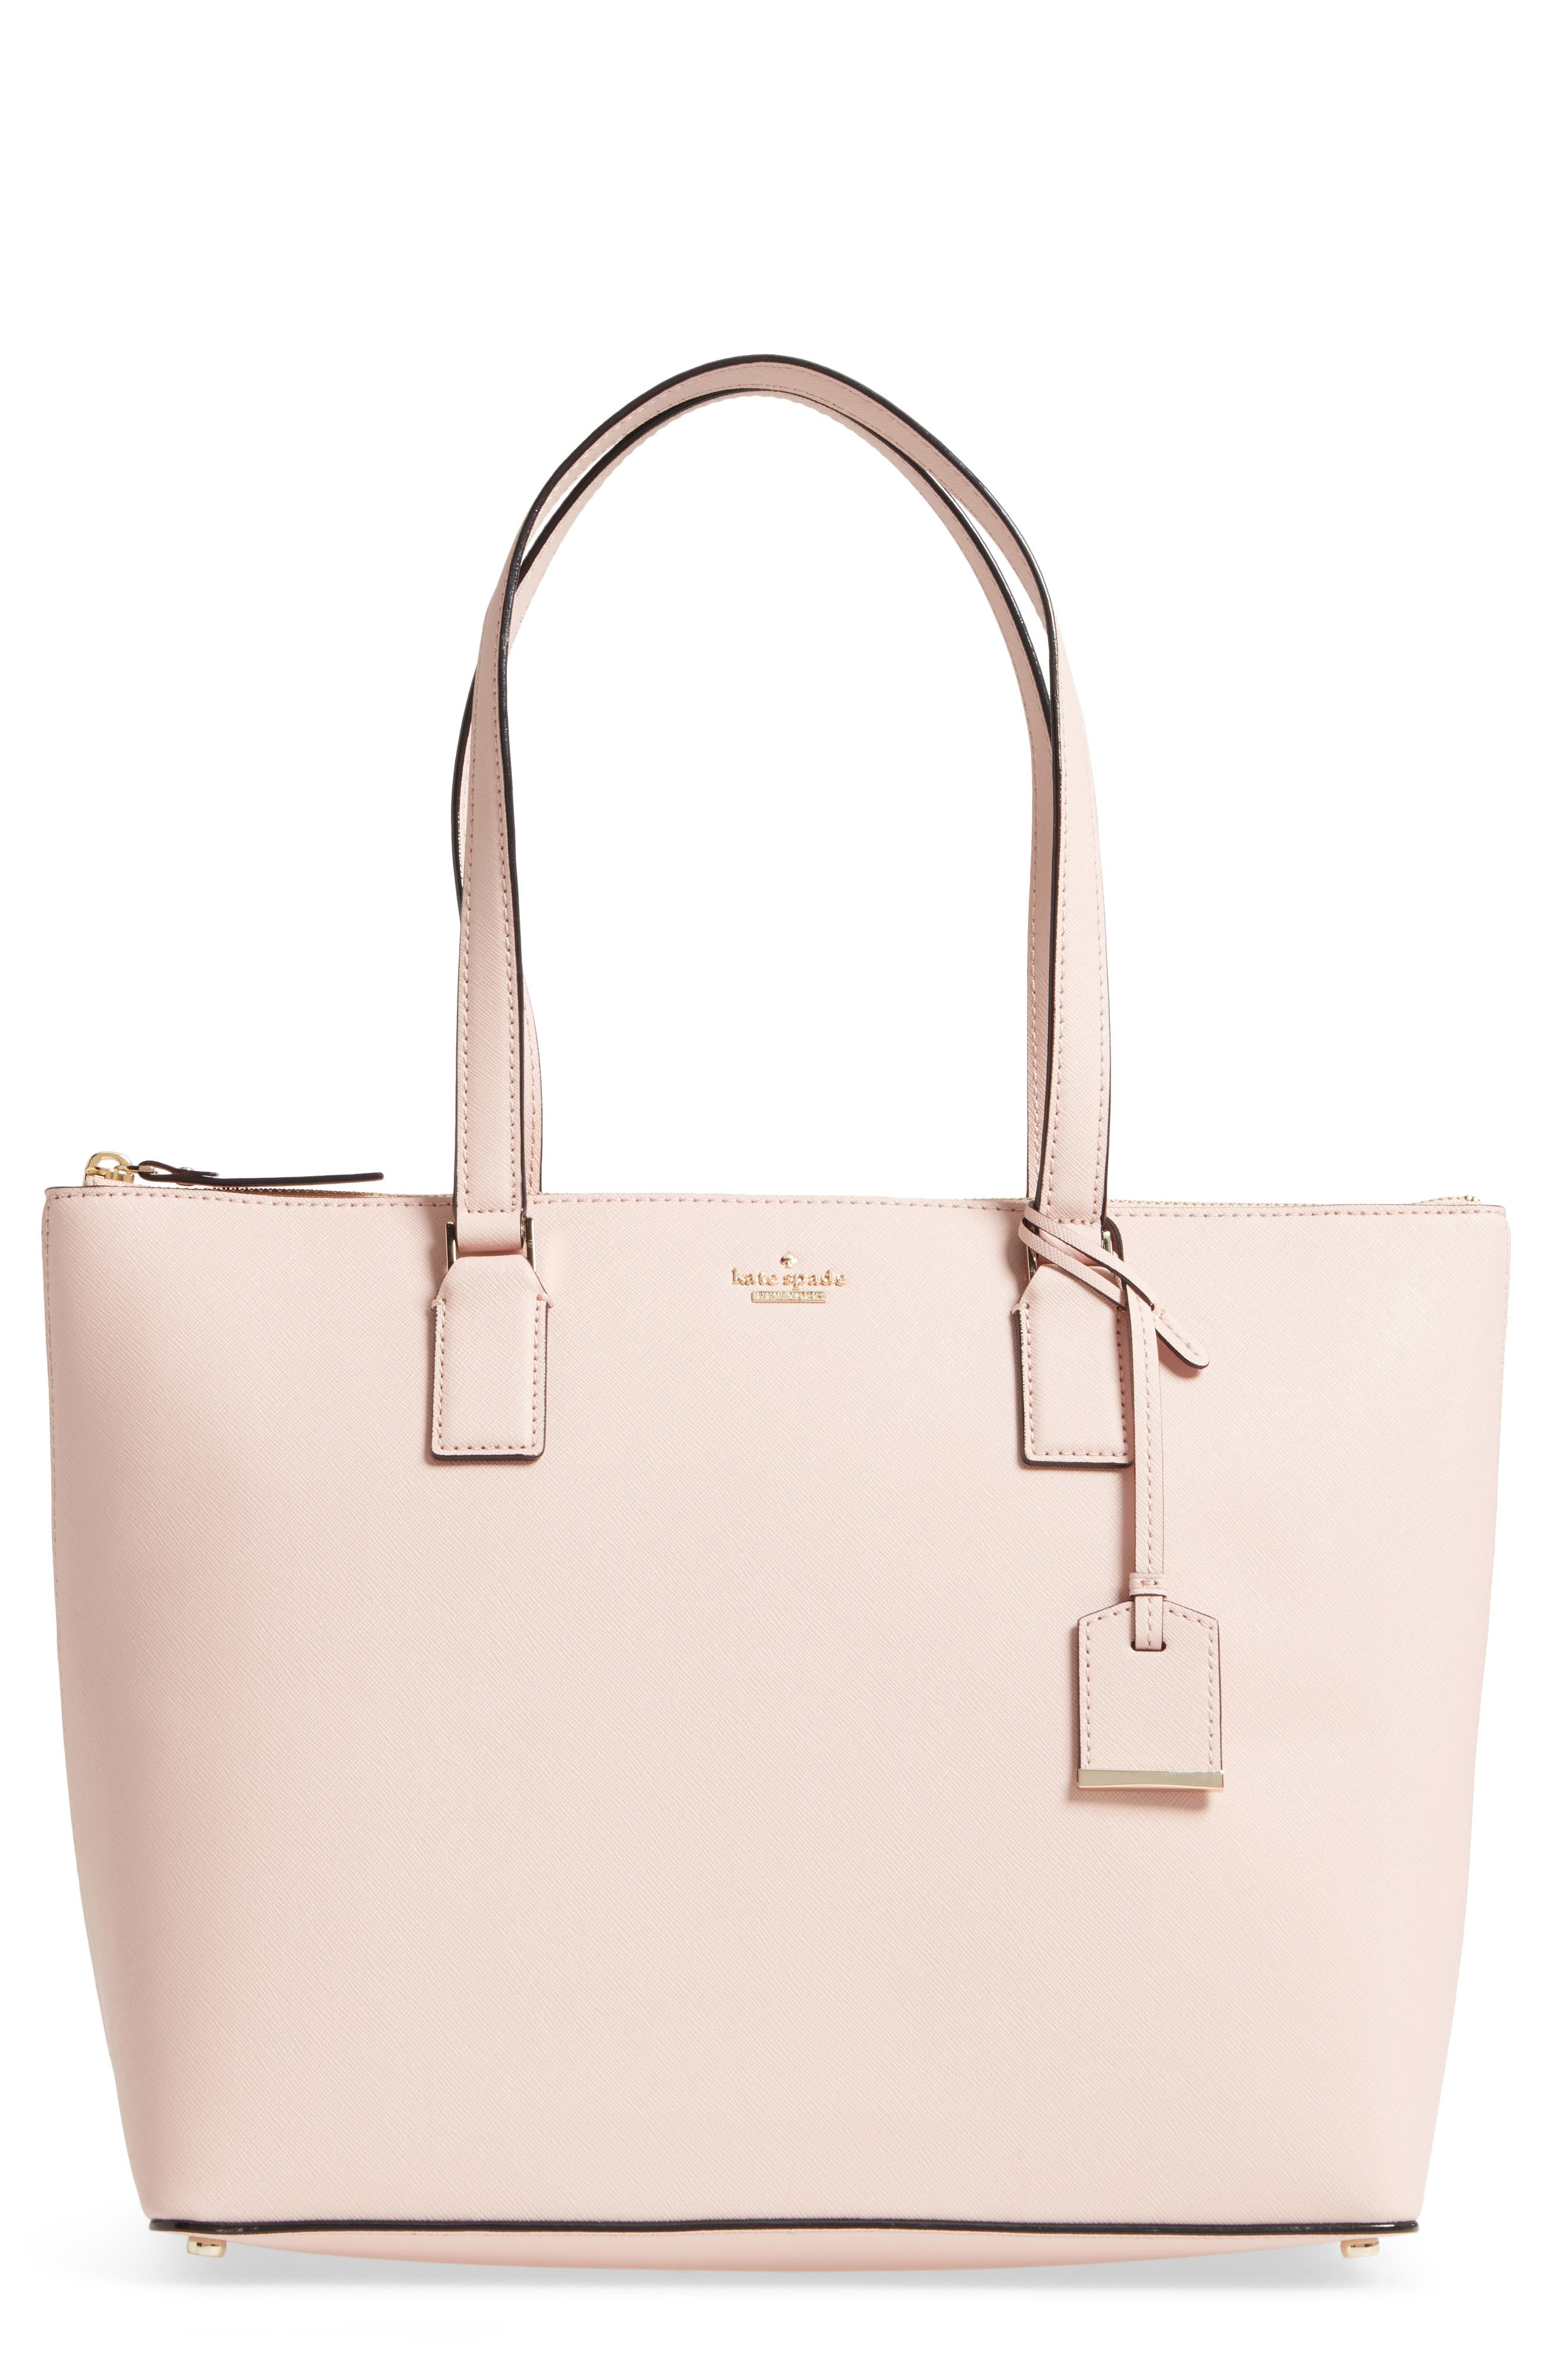 kate spade new york 'cameron street - lucie' tote